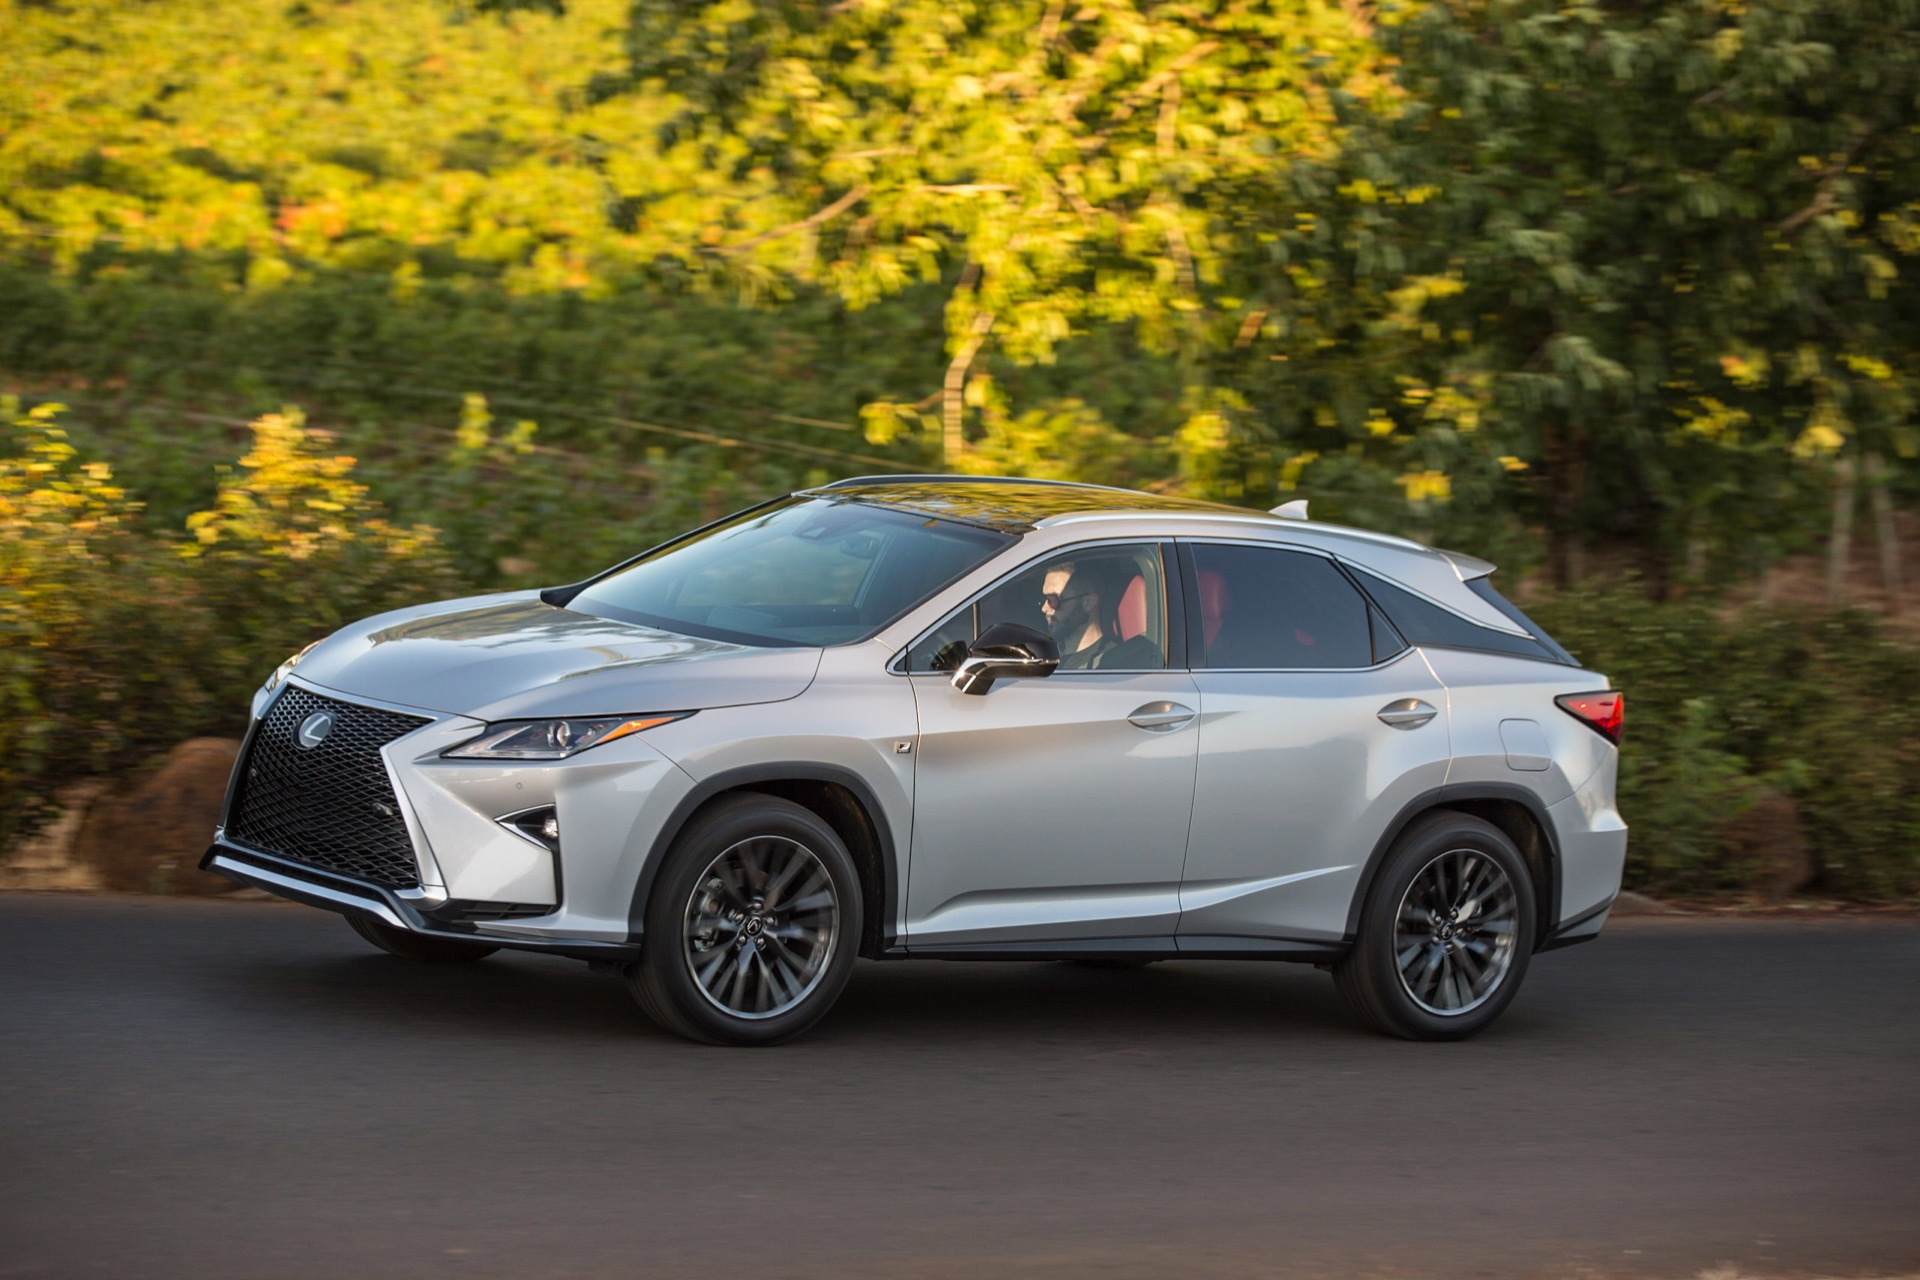 2016 lexus rx 350 f sport first drive review. Black Bedroom Furniture Sets. Home Design Ideas